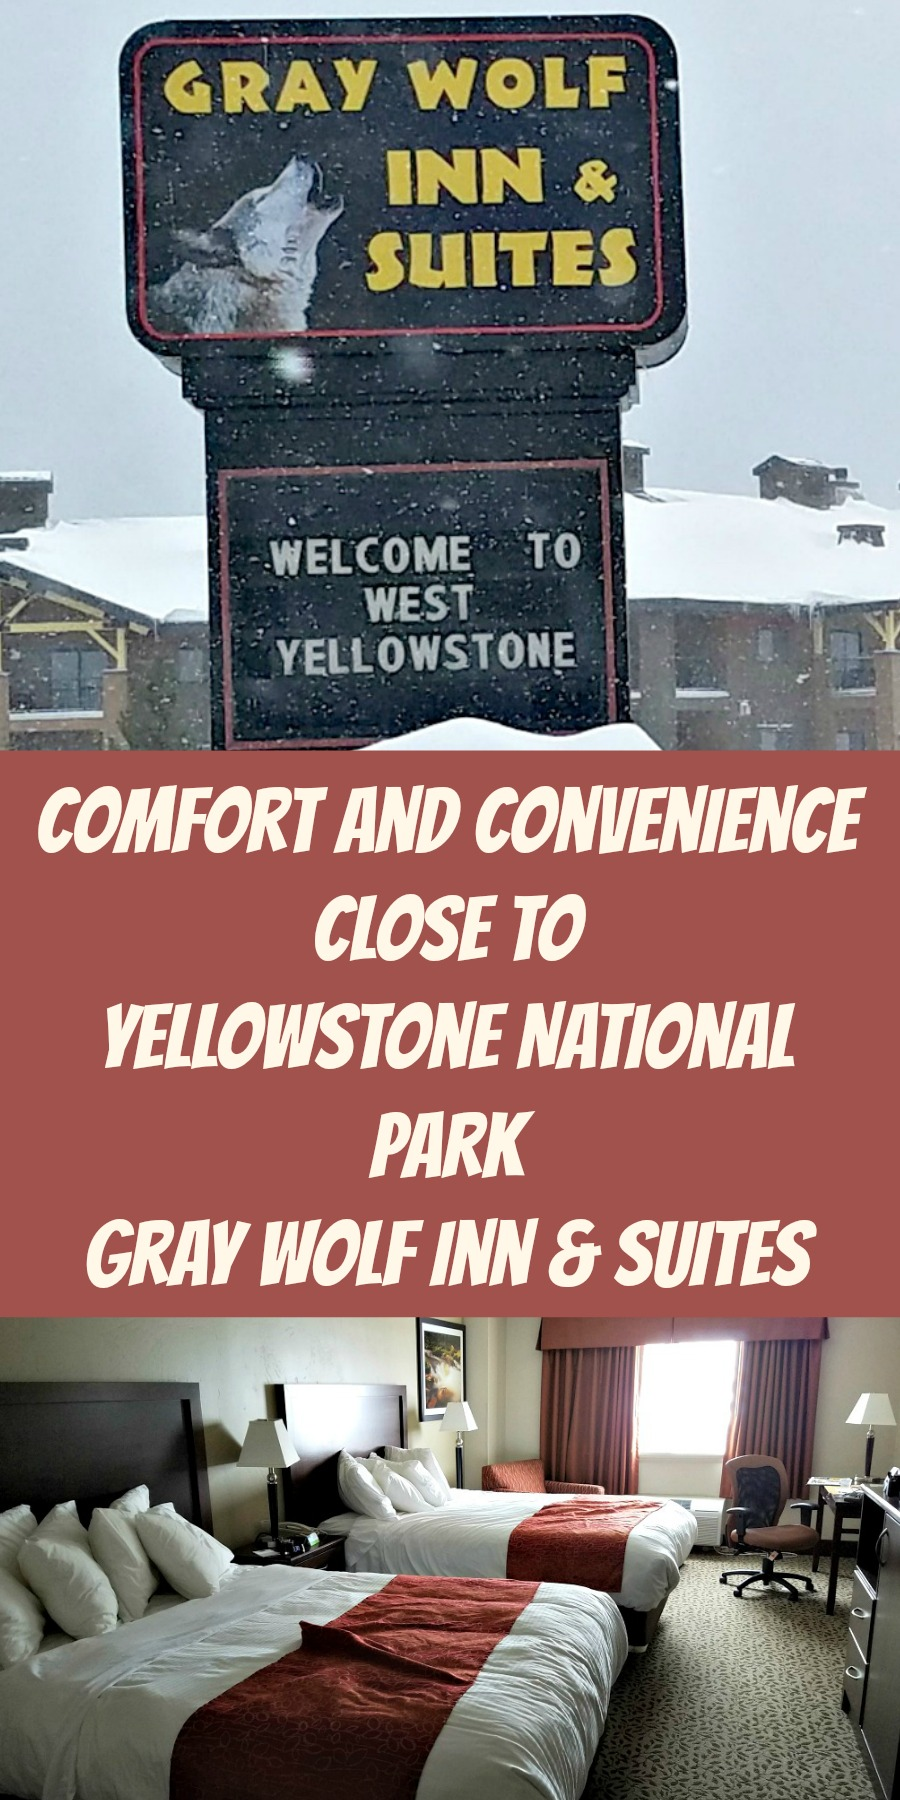 Grey Wolf Inn and Suites - Comfort and Convenience from a